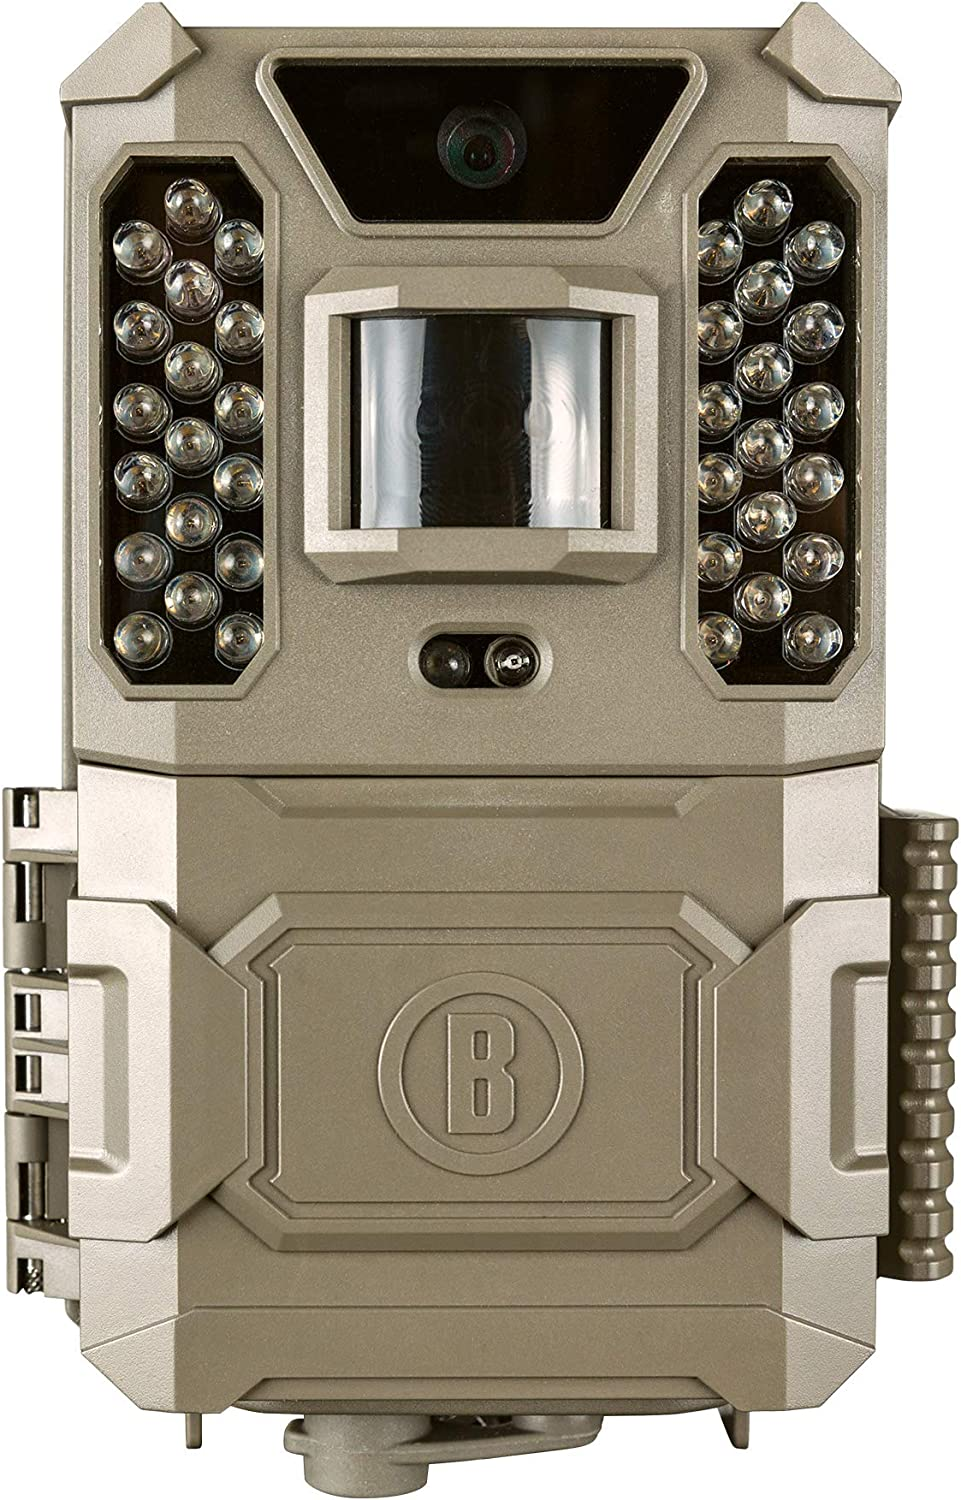 Bushnell by Weekly update Save money Primos Prime 24MP_LowGlow_119932C Camera Brow Trail